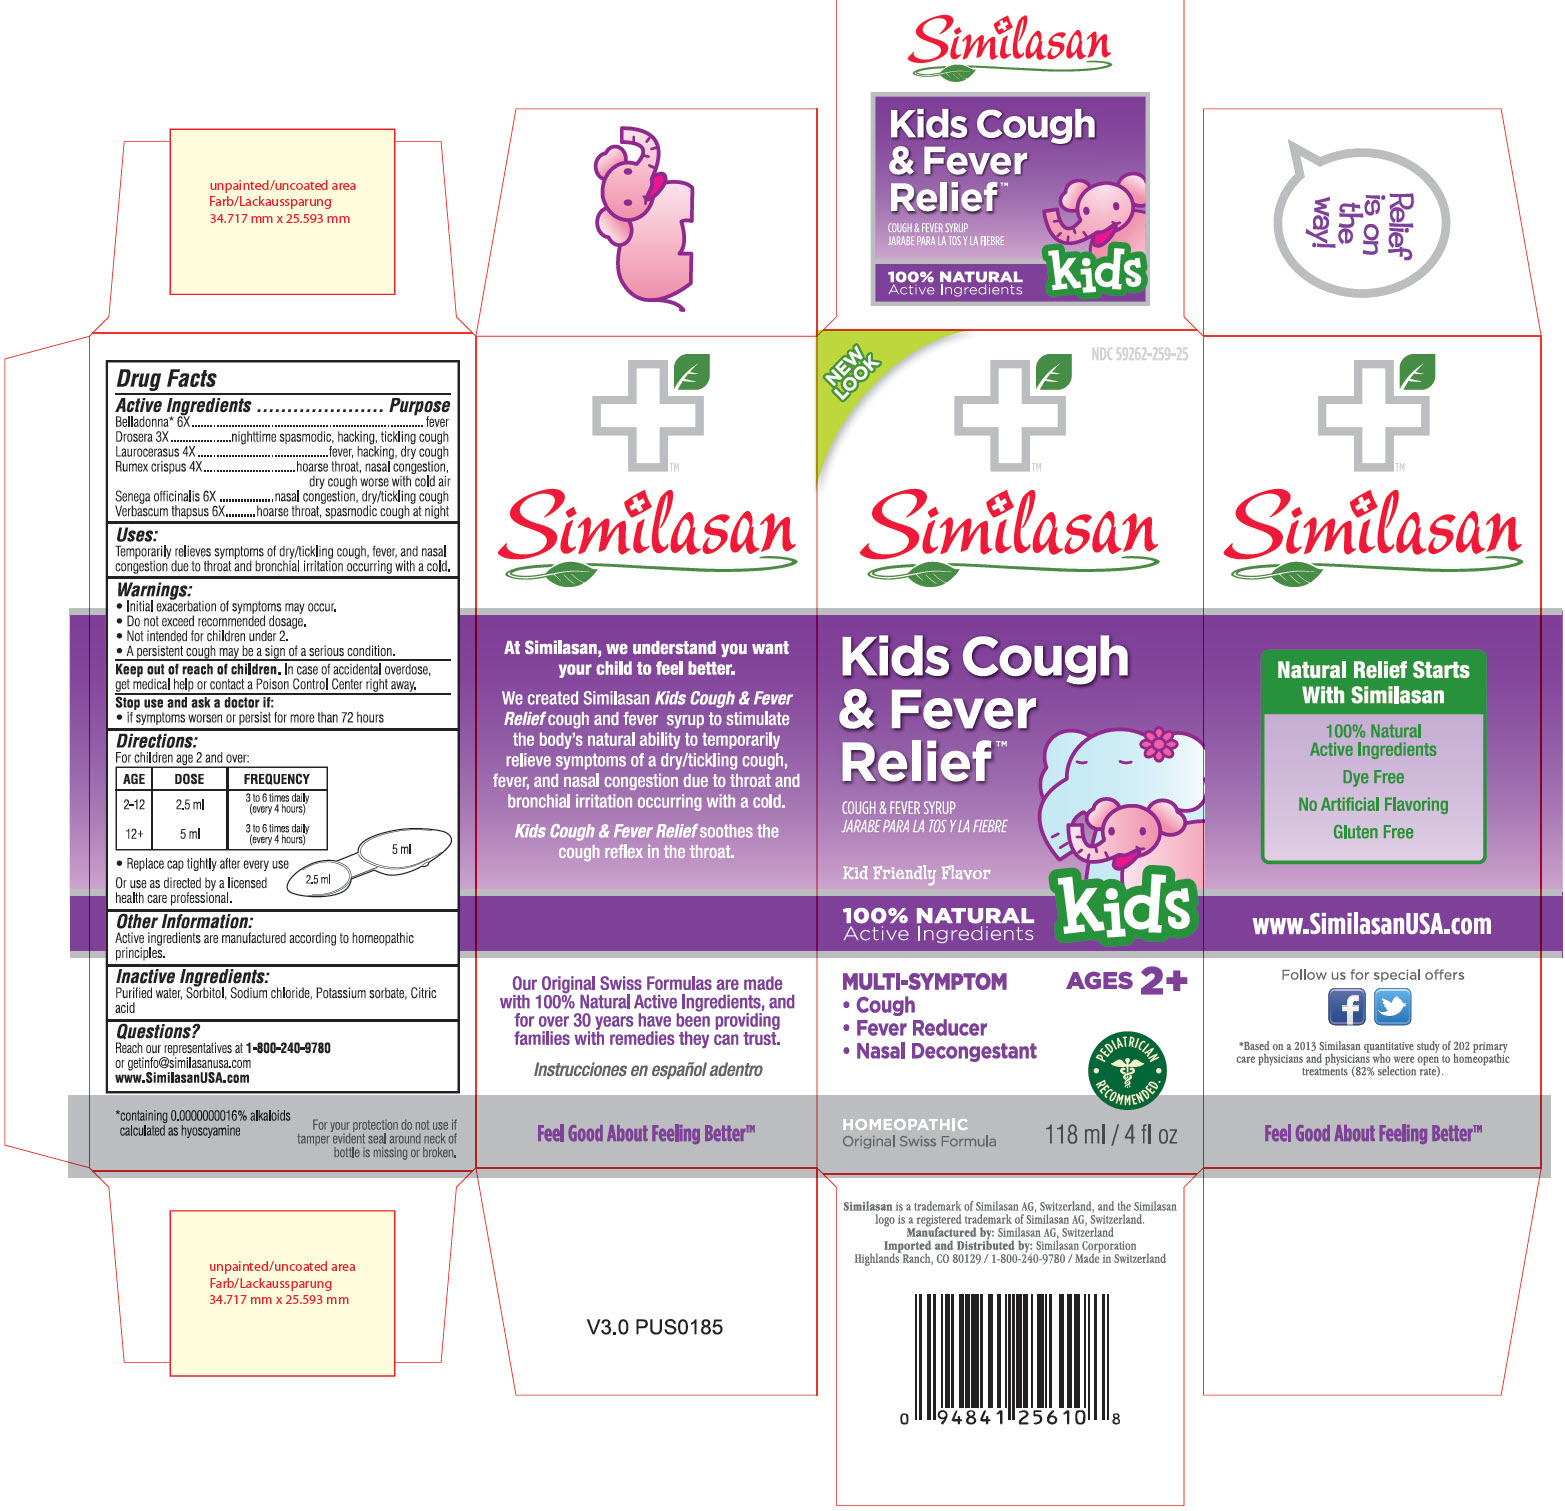 NDC 59262-259-25 Similasan Kids Cough & Fever Relief Cough & Fever Syrup 118 ml / 4fl oz